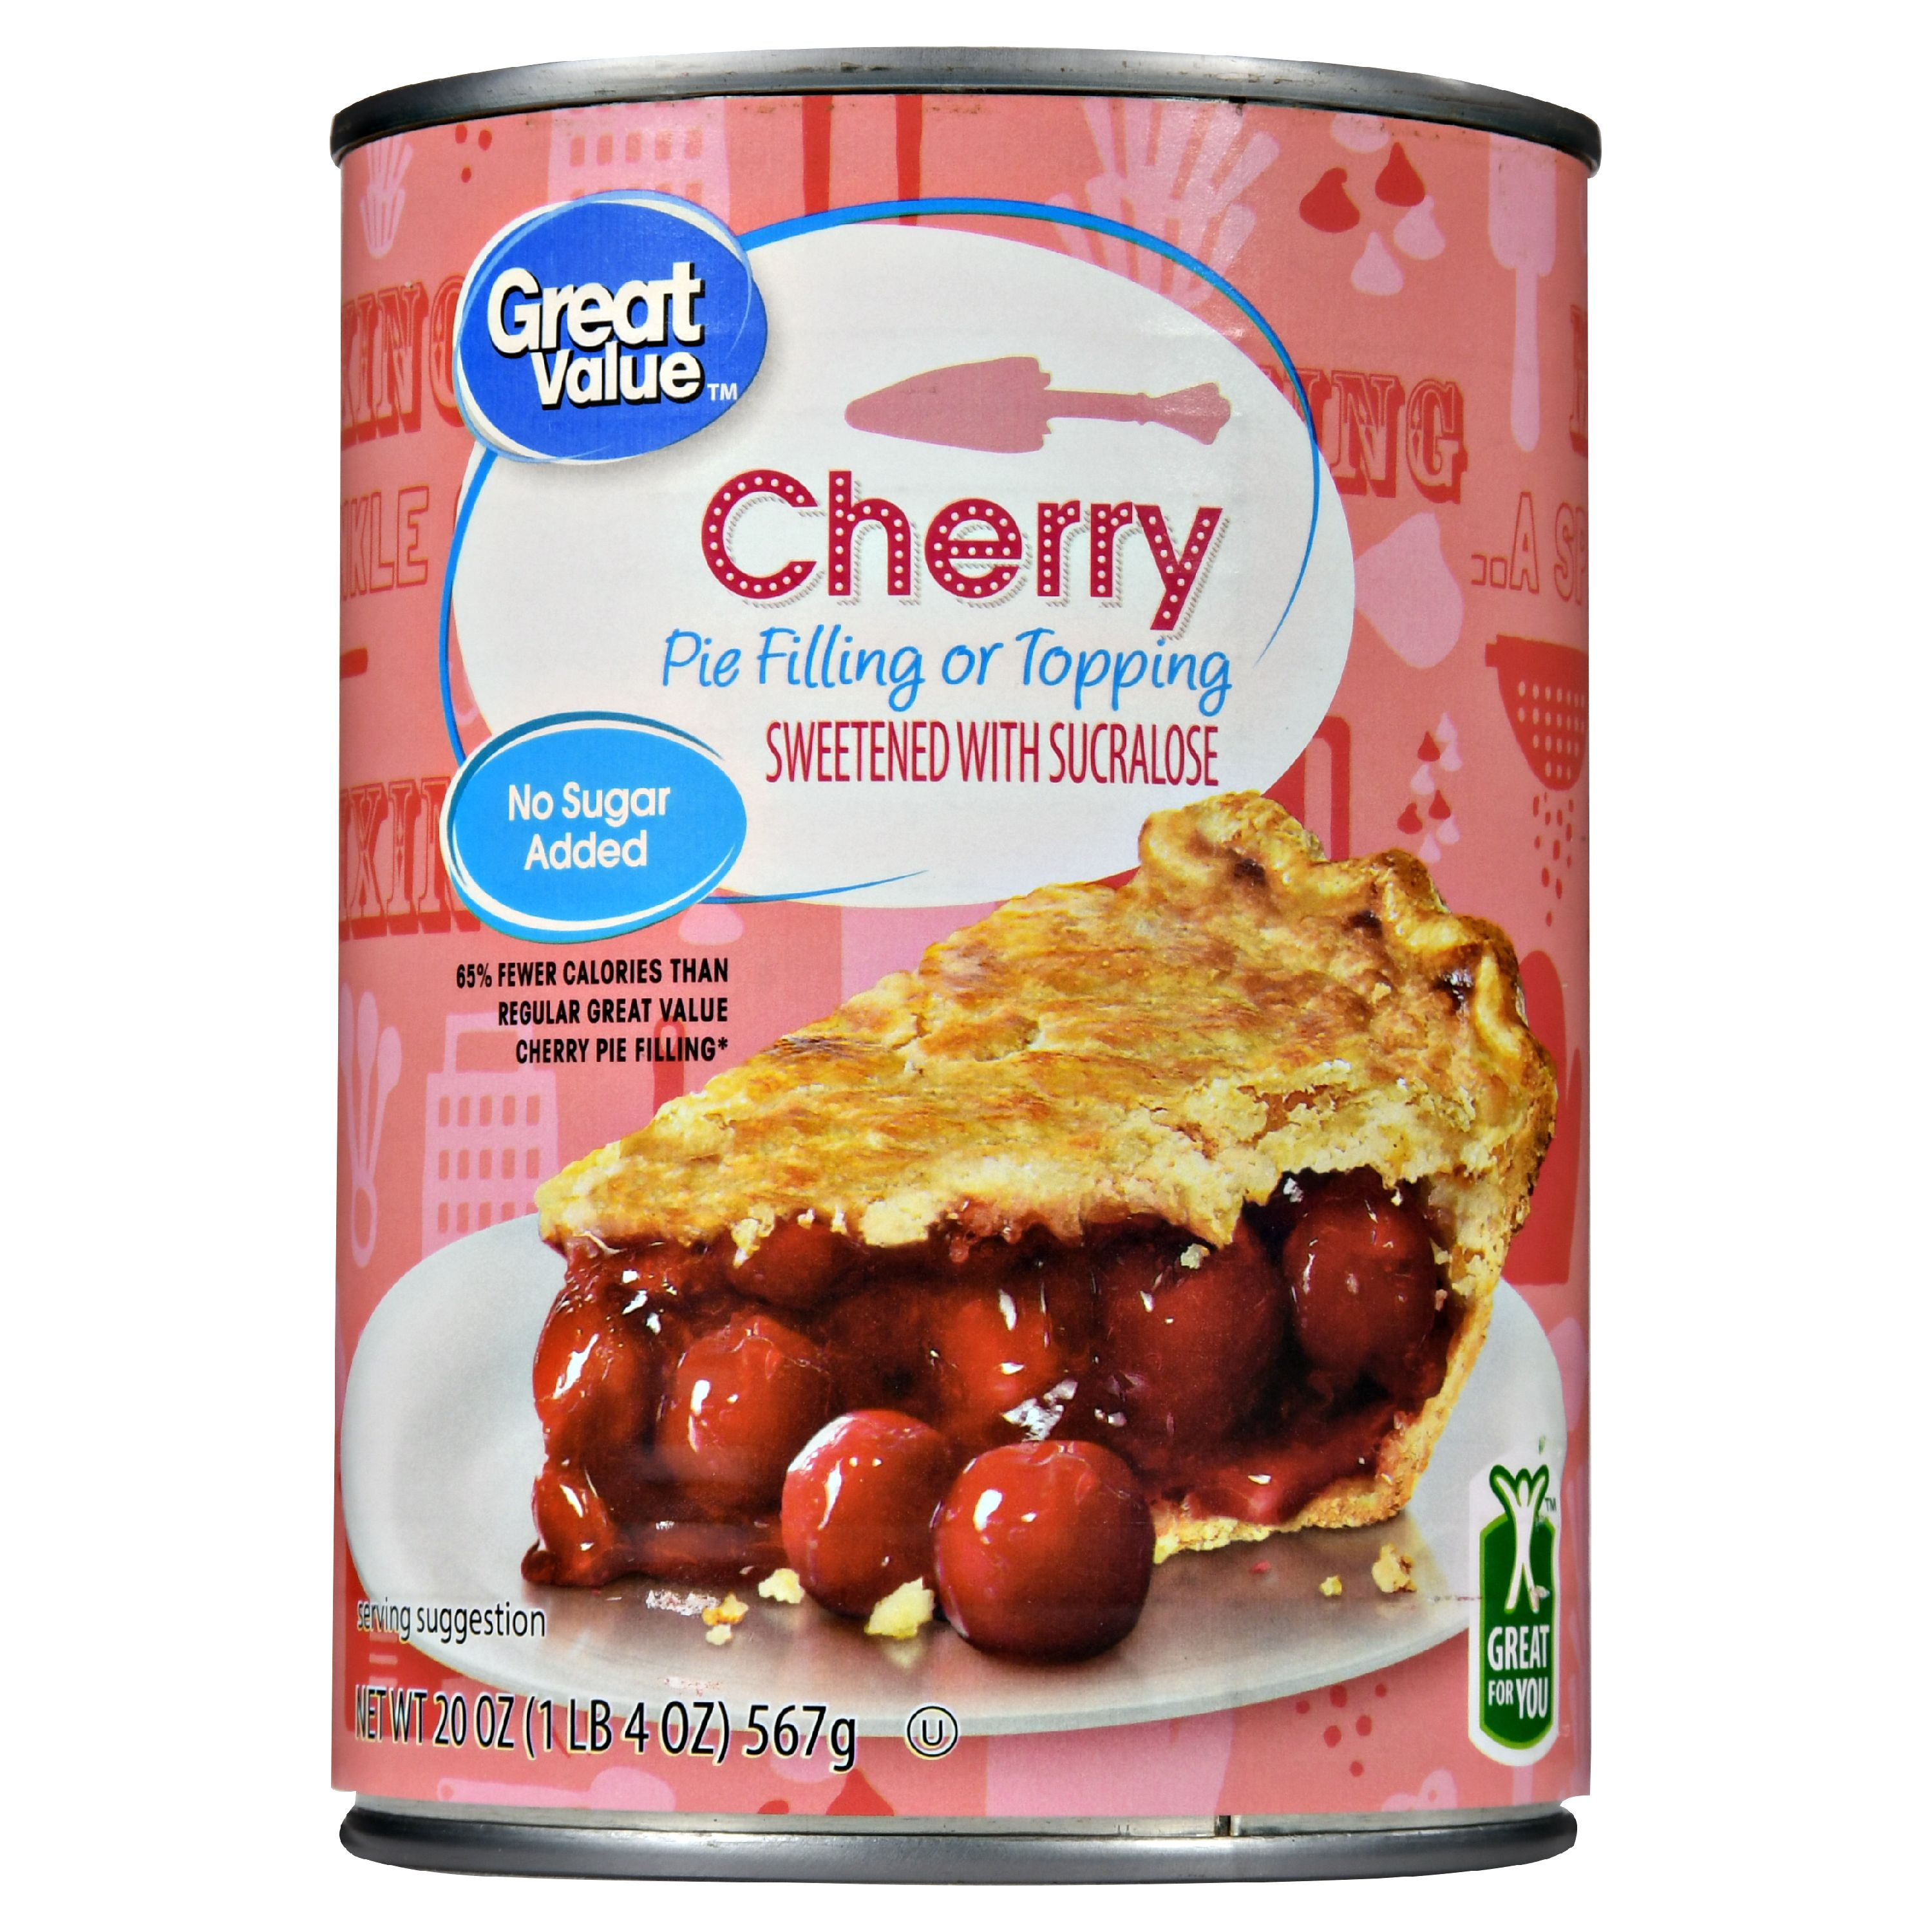 Great Value Pie Filling or Topping No Sugar Added, Cherry, 20 oz